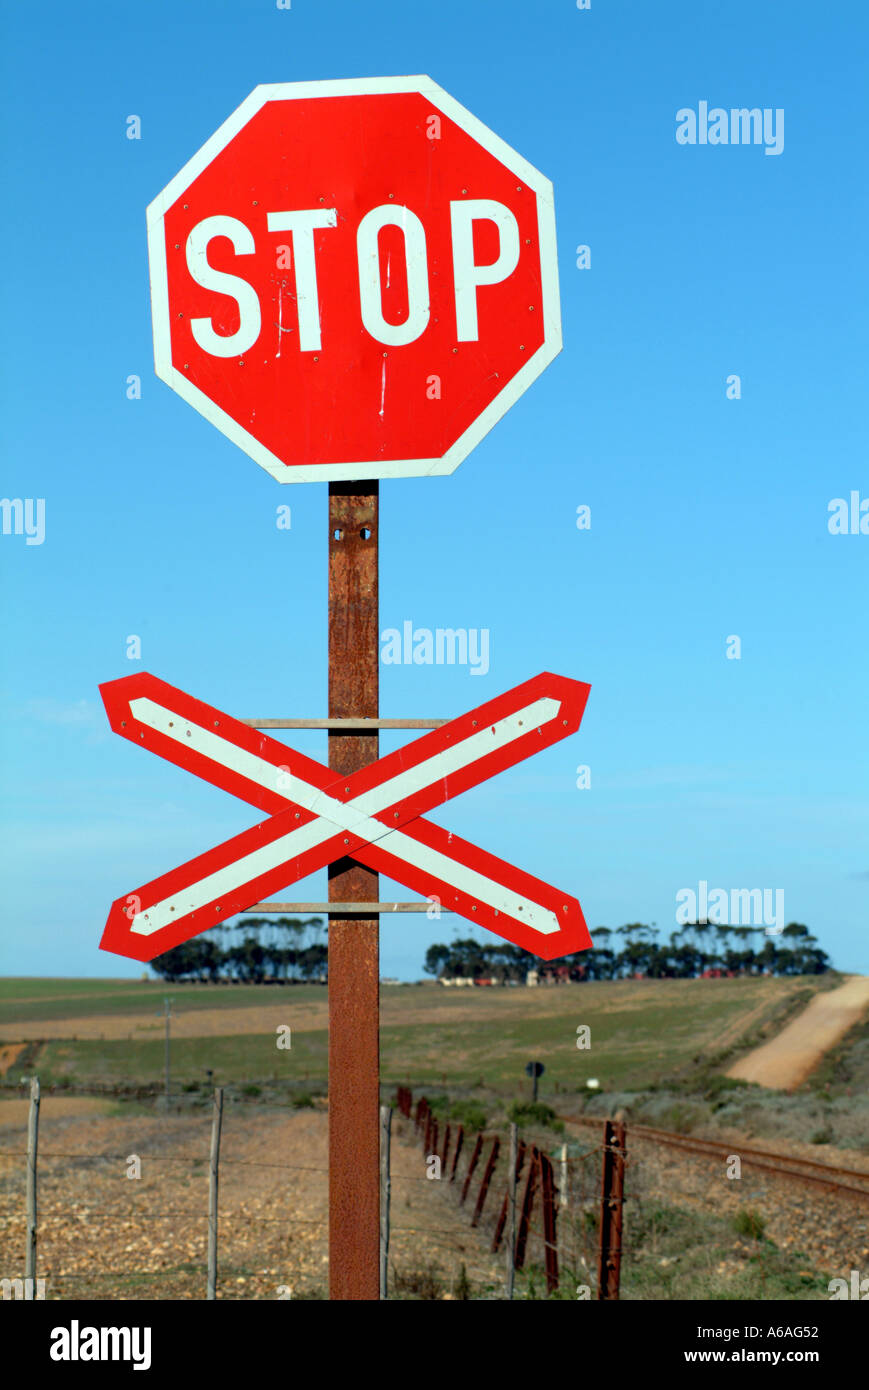 Level Crossing Sign Stock Photos & Level Crossing Sign Stock